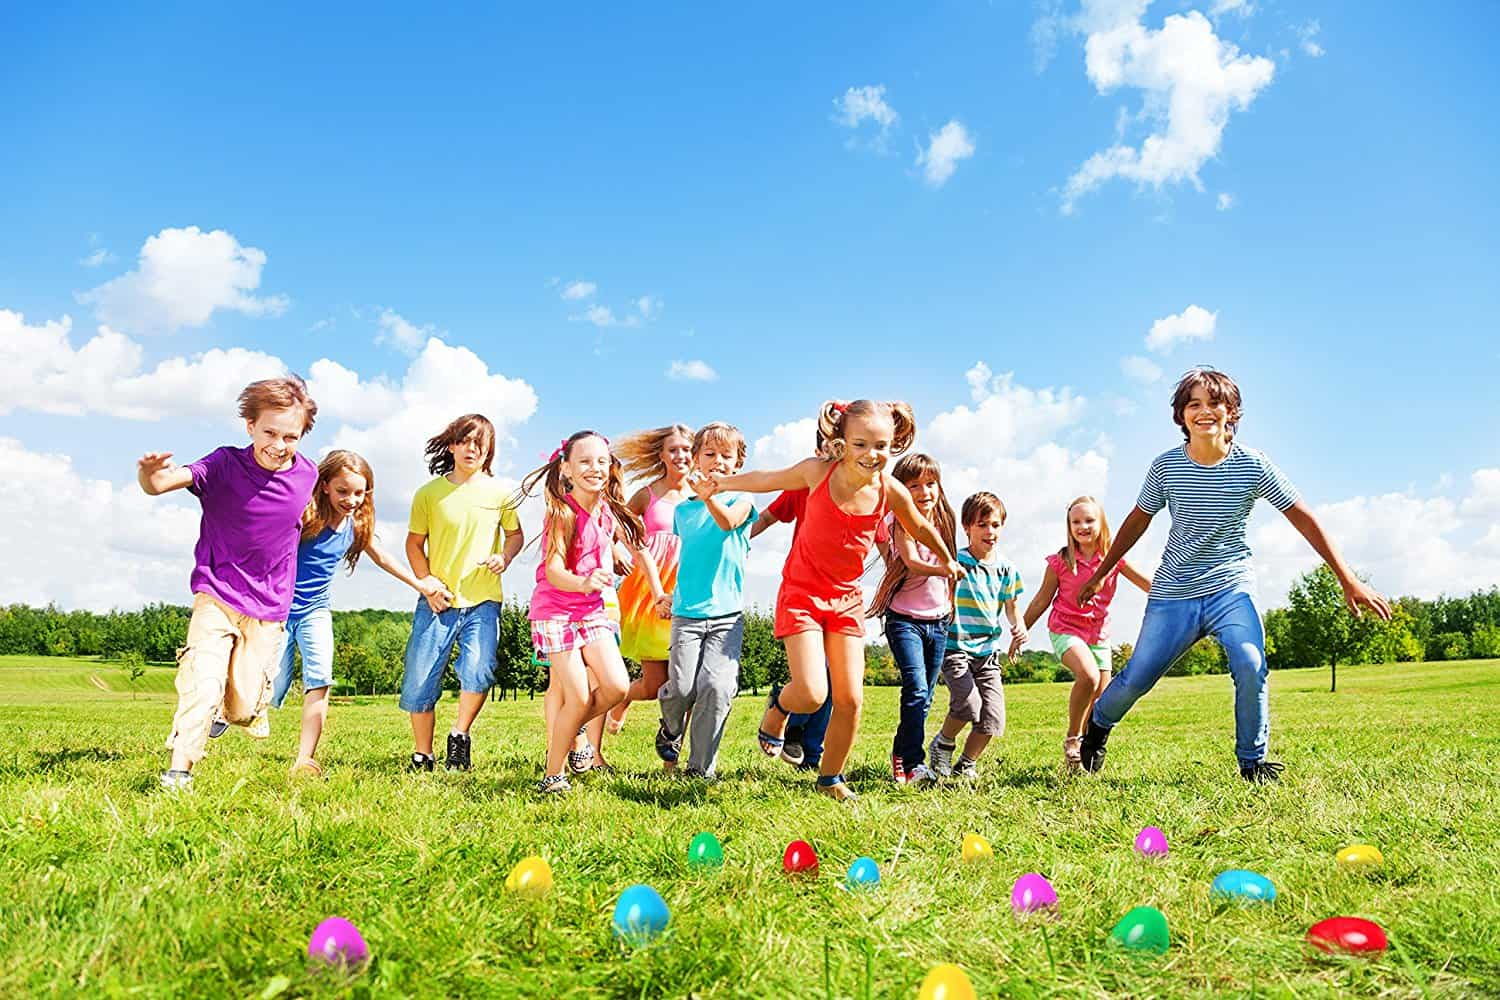 April fools pranks to play on kids this Easter